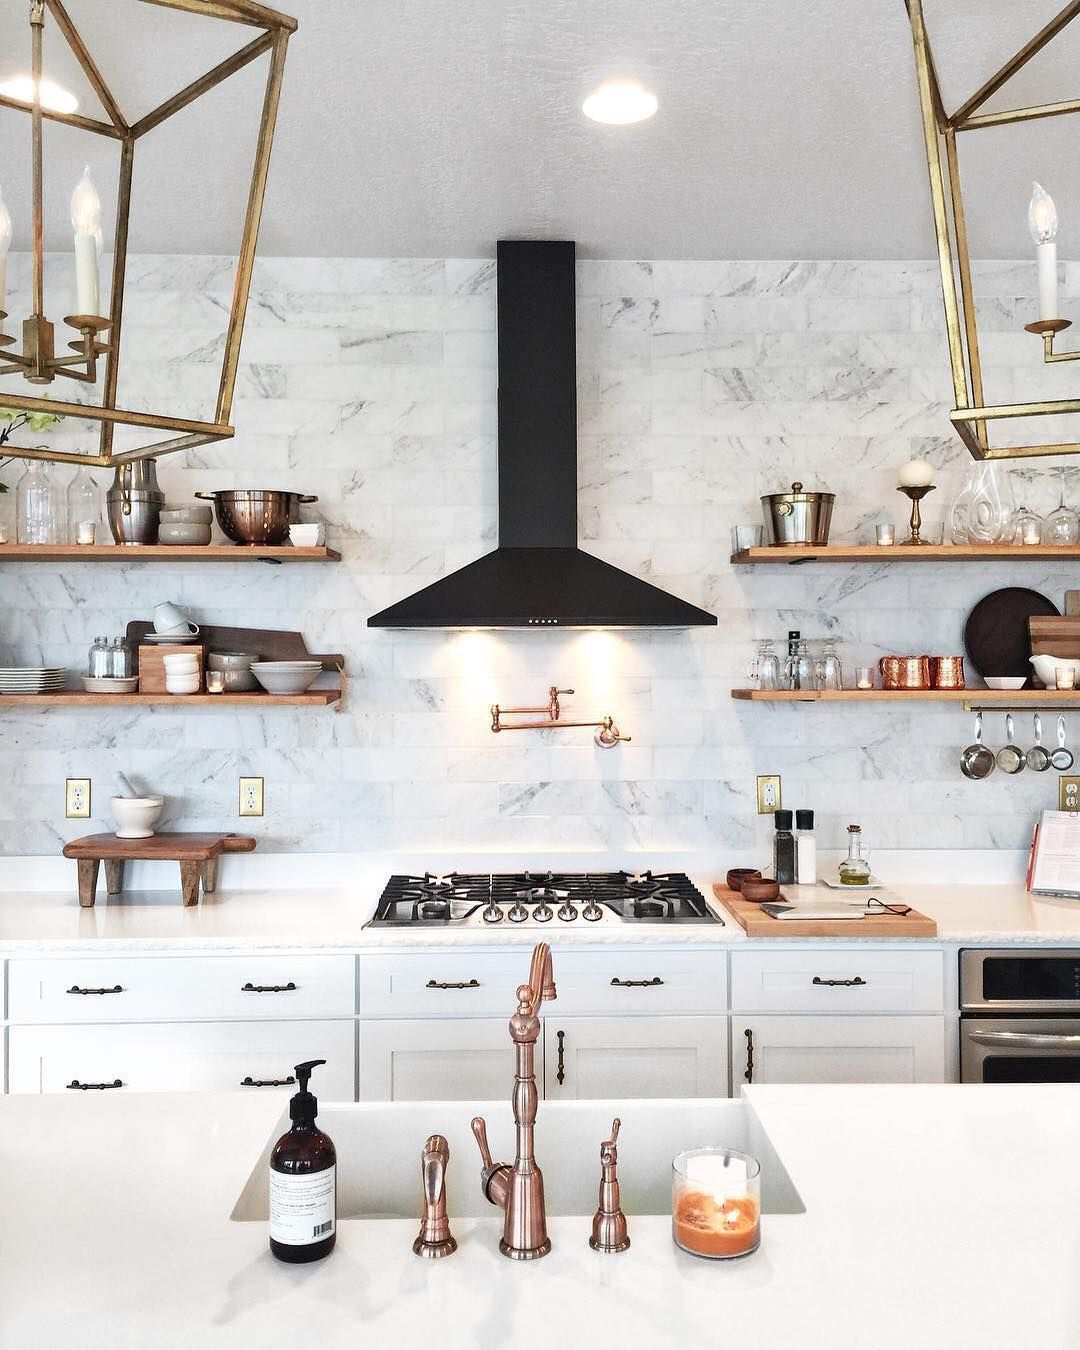 Kitchen Decor Let S Fall In Love With These Copper Kitchens A Dazzling Home Design